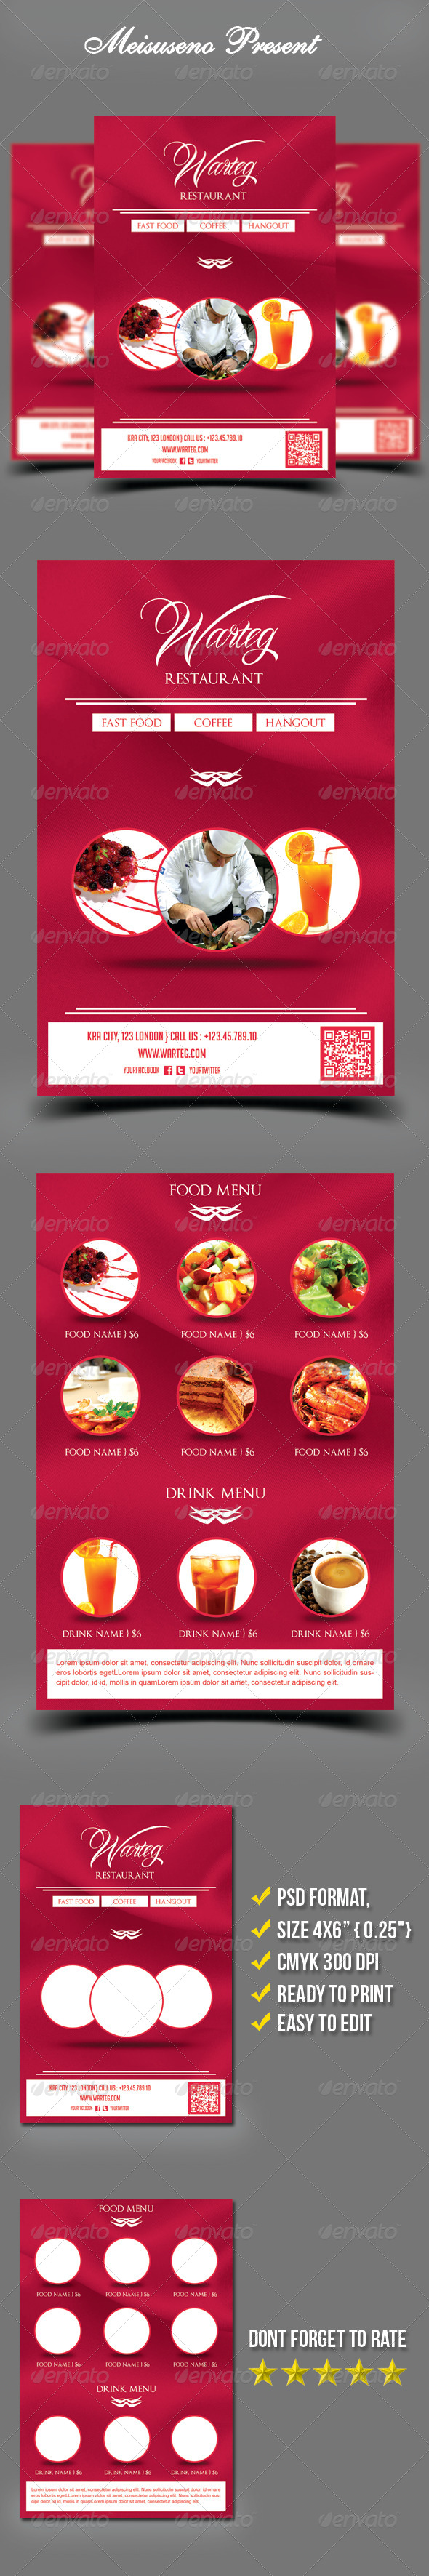 Warteg Restaurant Flyer Template - Restaurant Flyers